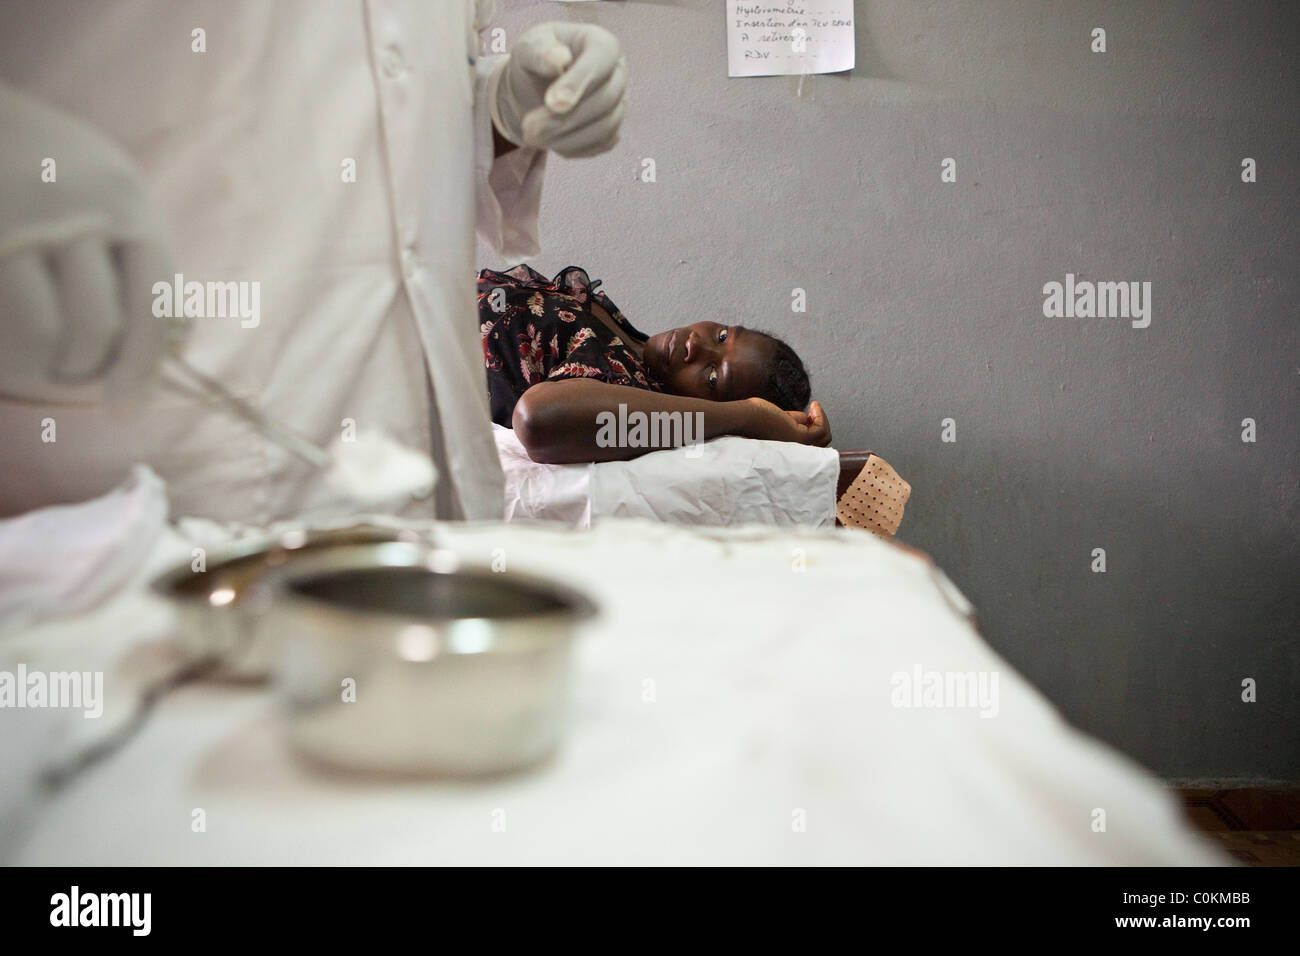 A woman receives a hormonal implant (jadelle) at a reproductive health clinic in Yaounde, Cameroon, West Africa. - Stock Image